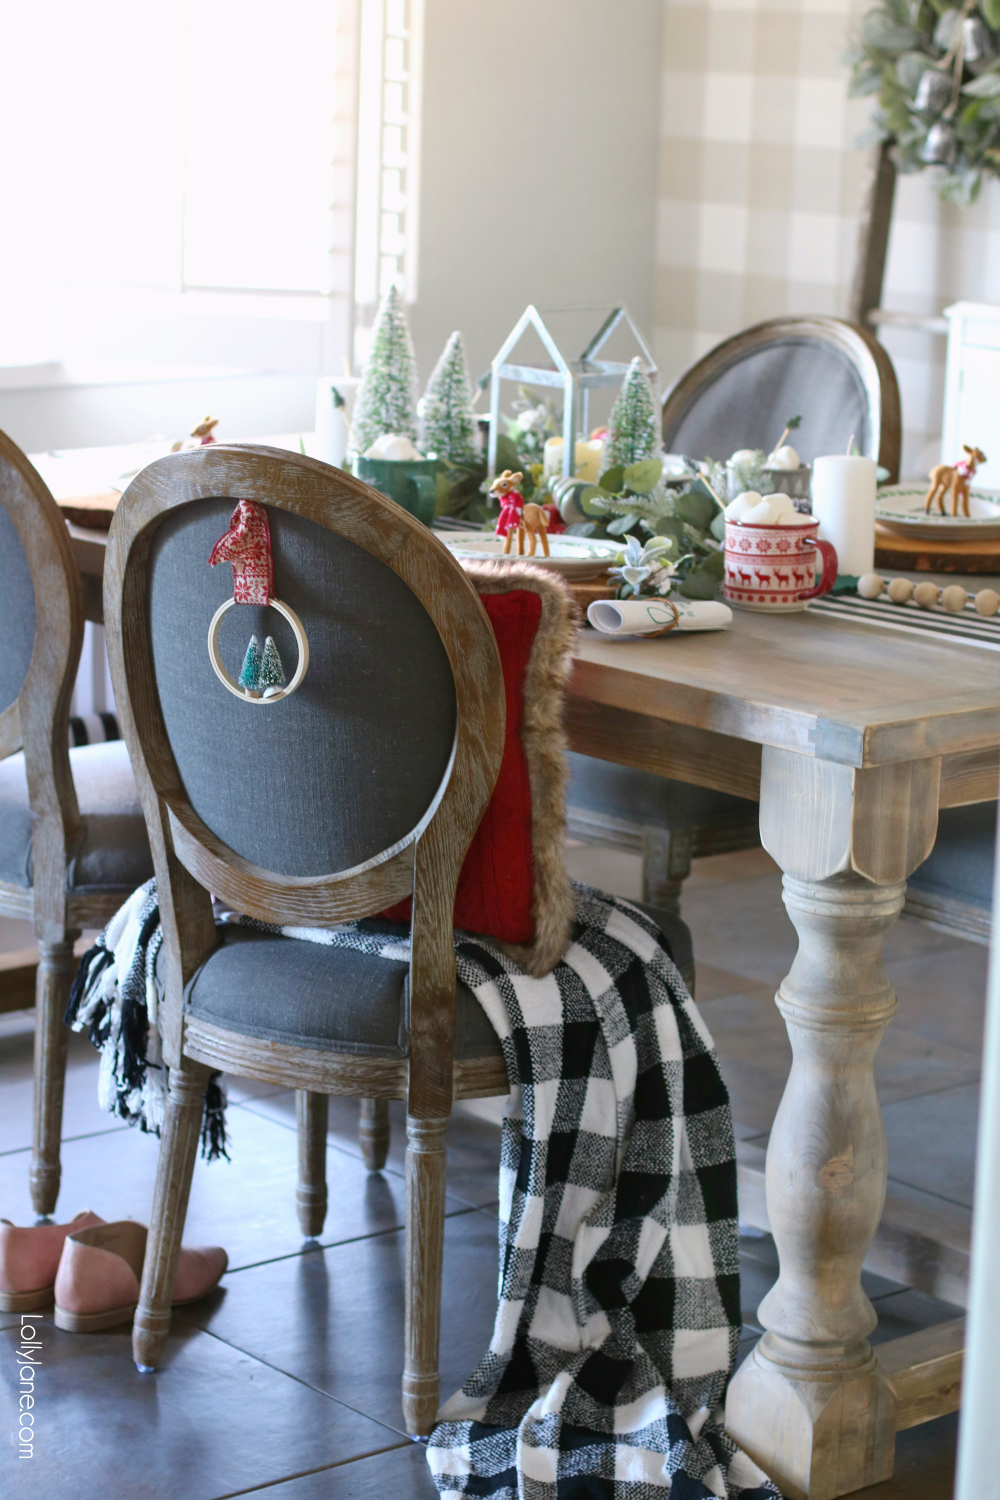 Decorate the back of your chair to really make it blend with your centerpiece! This decor doubles as an ornament for guests to take home, too cute!! #christmas #christmastablescape #christmascenterpiece #centerpiece #wintertablescape #diy